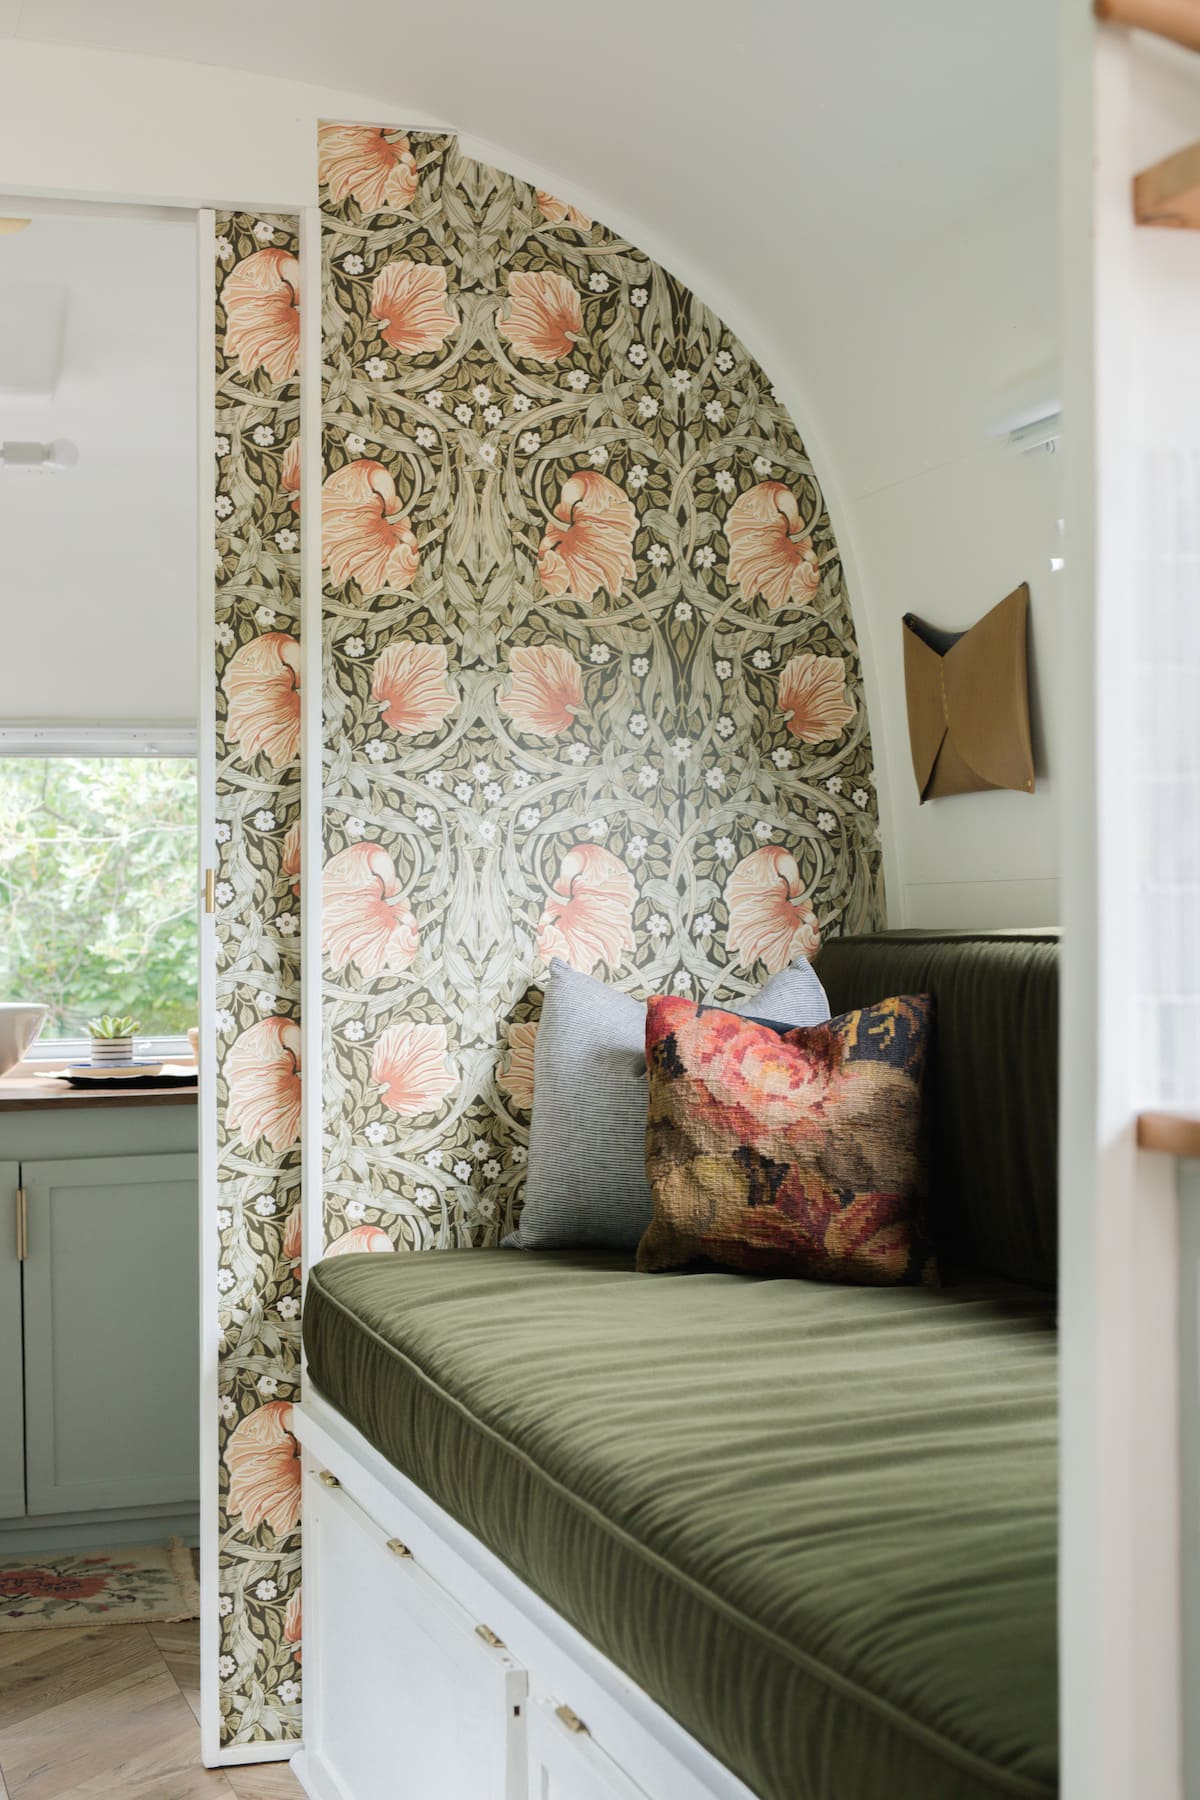 marjorie airstream 10 - This renovated Airstream trailer is all floral and boho-chic charm